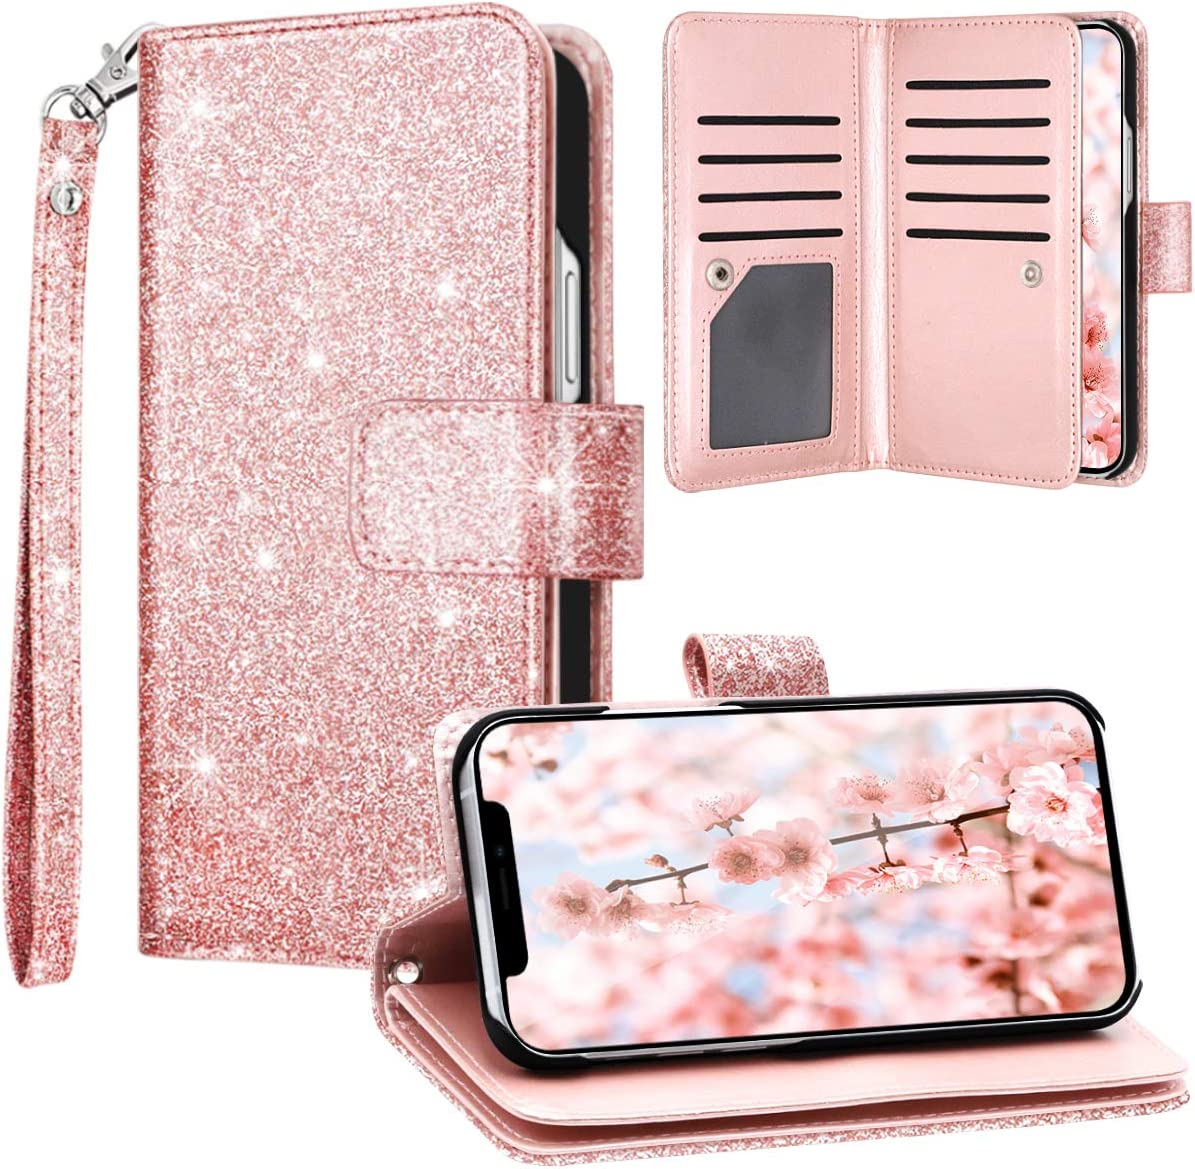 Fingic Compatible with iPhone 12 Mini Case Wallet Case Glitter Sparkle Cover 9 Card Holder PU Leather Detachable Wrist Strap Wallet Case for Women Cover for Apple iPhone 12 Mini 5G 2020, Rose Gold